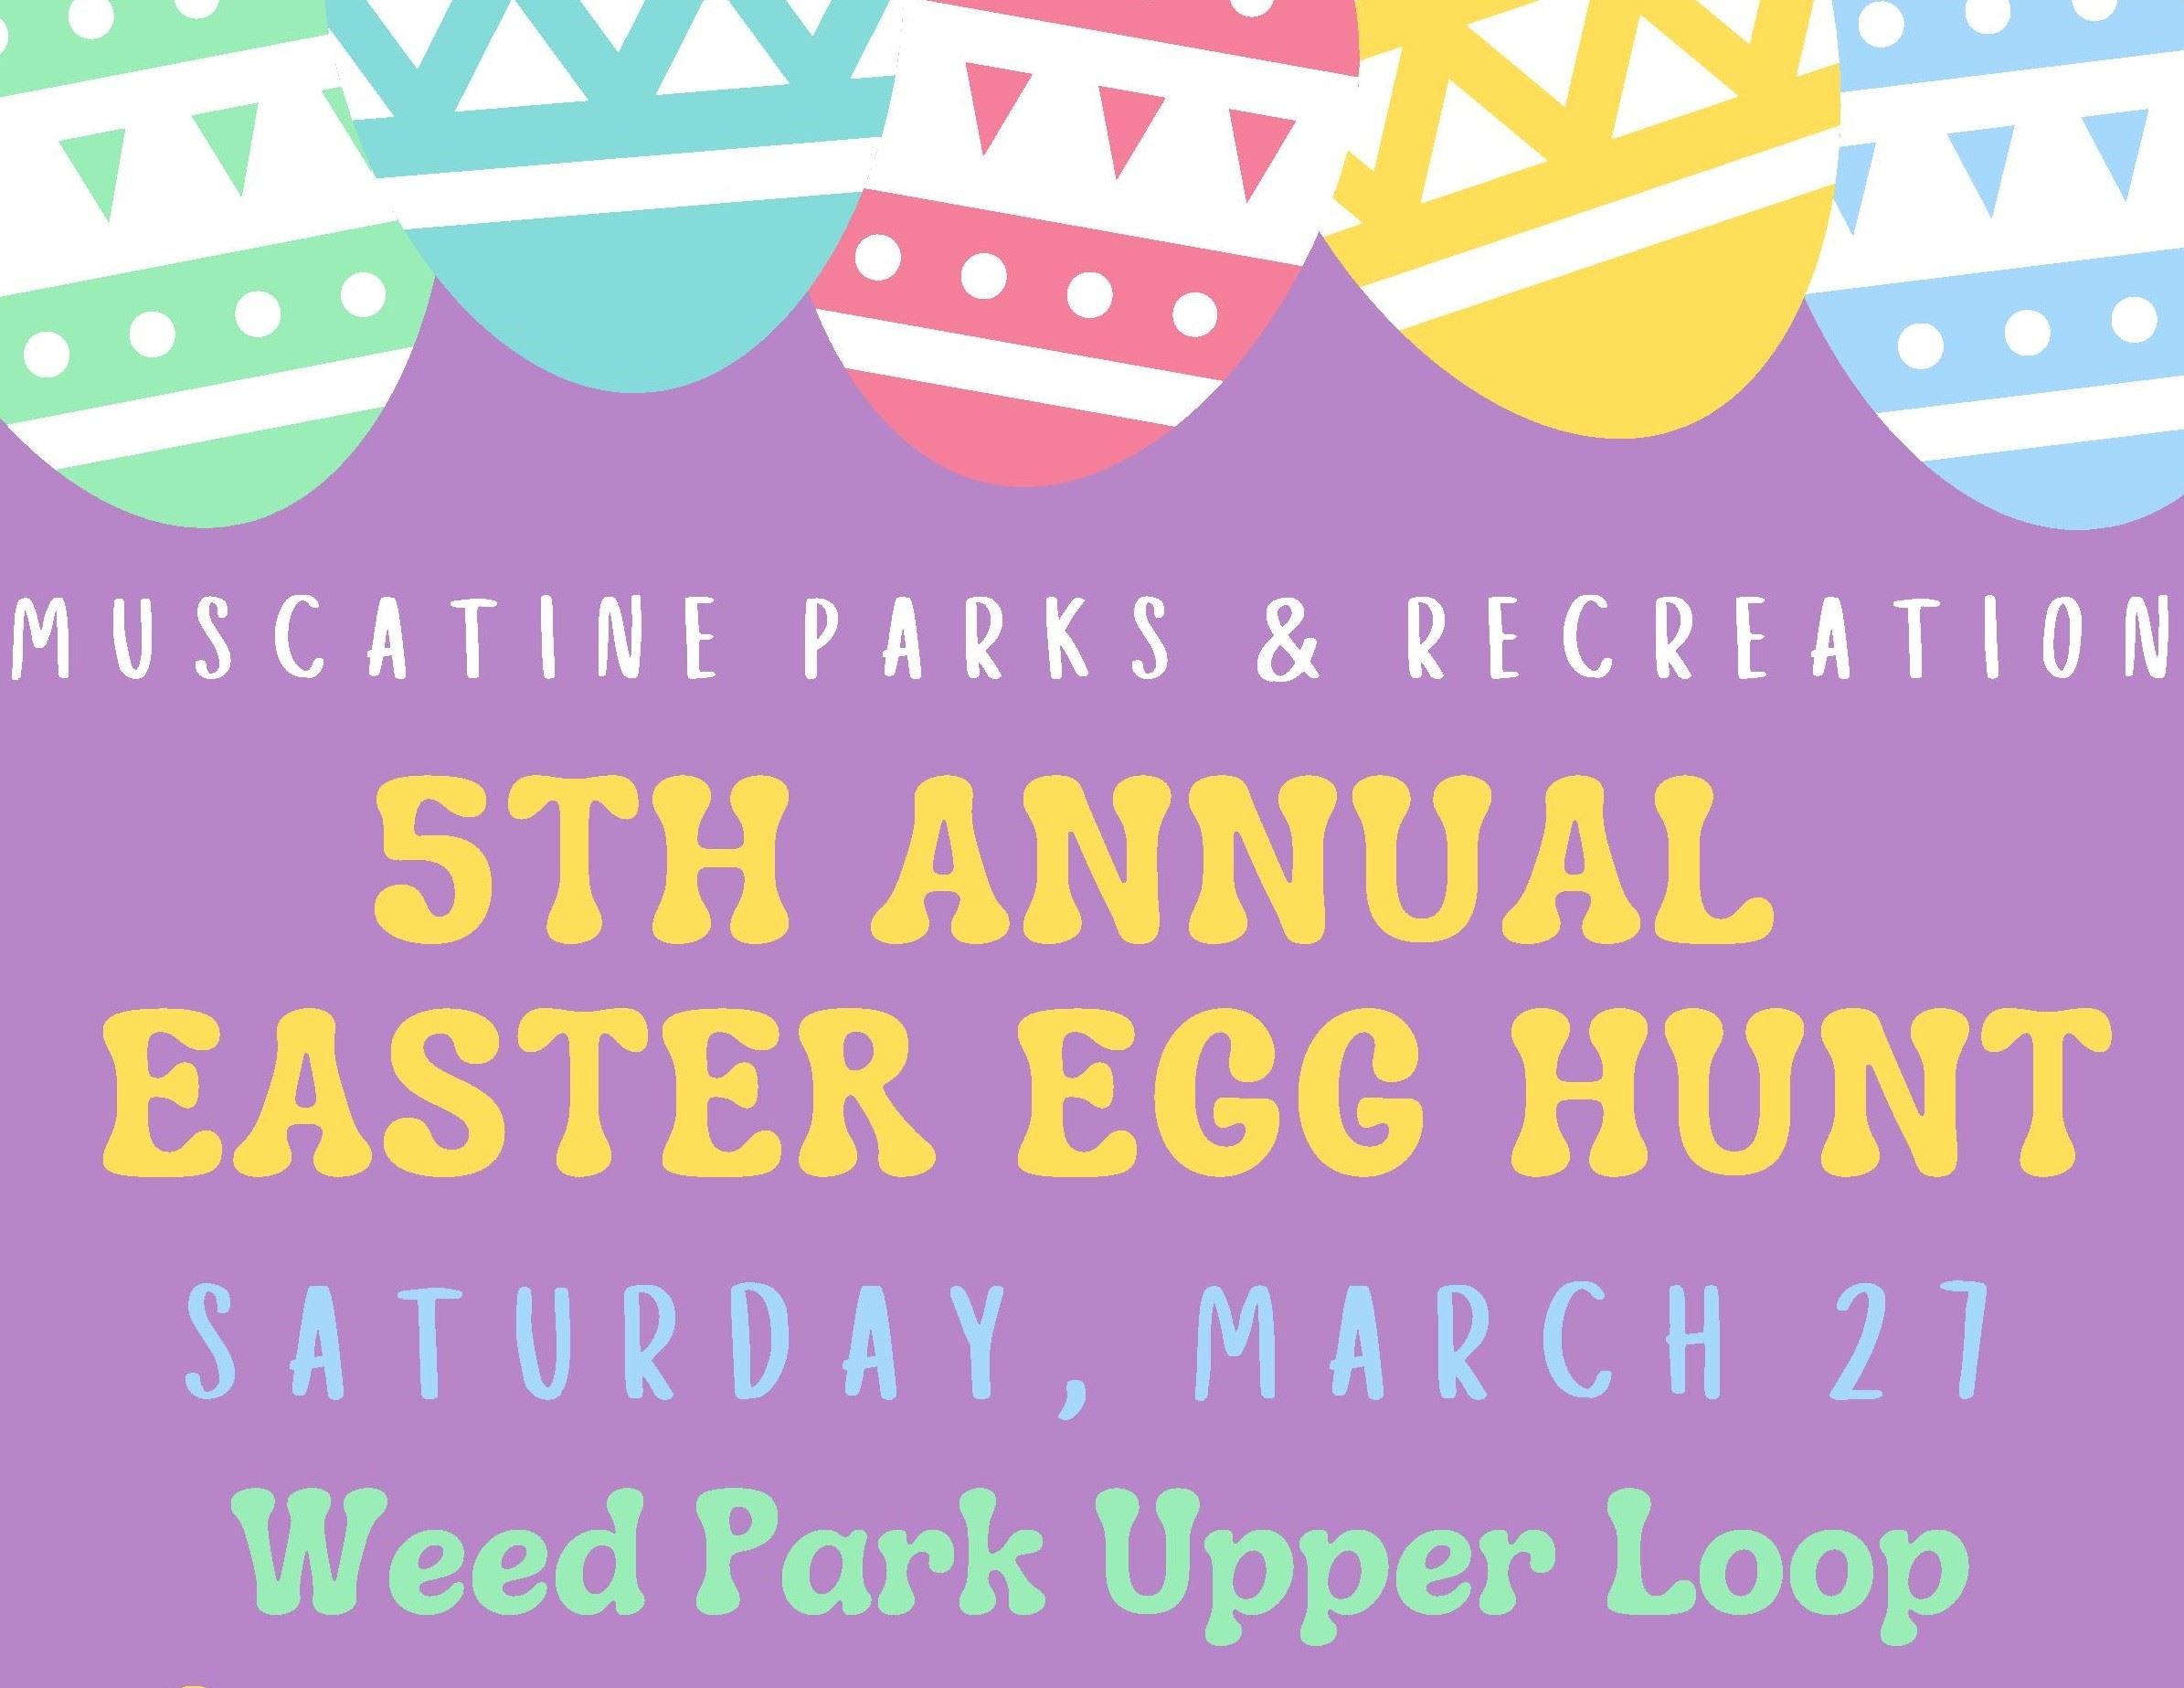 Easter Egg Hunt Flyer 2021 (JPG)